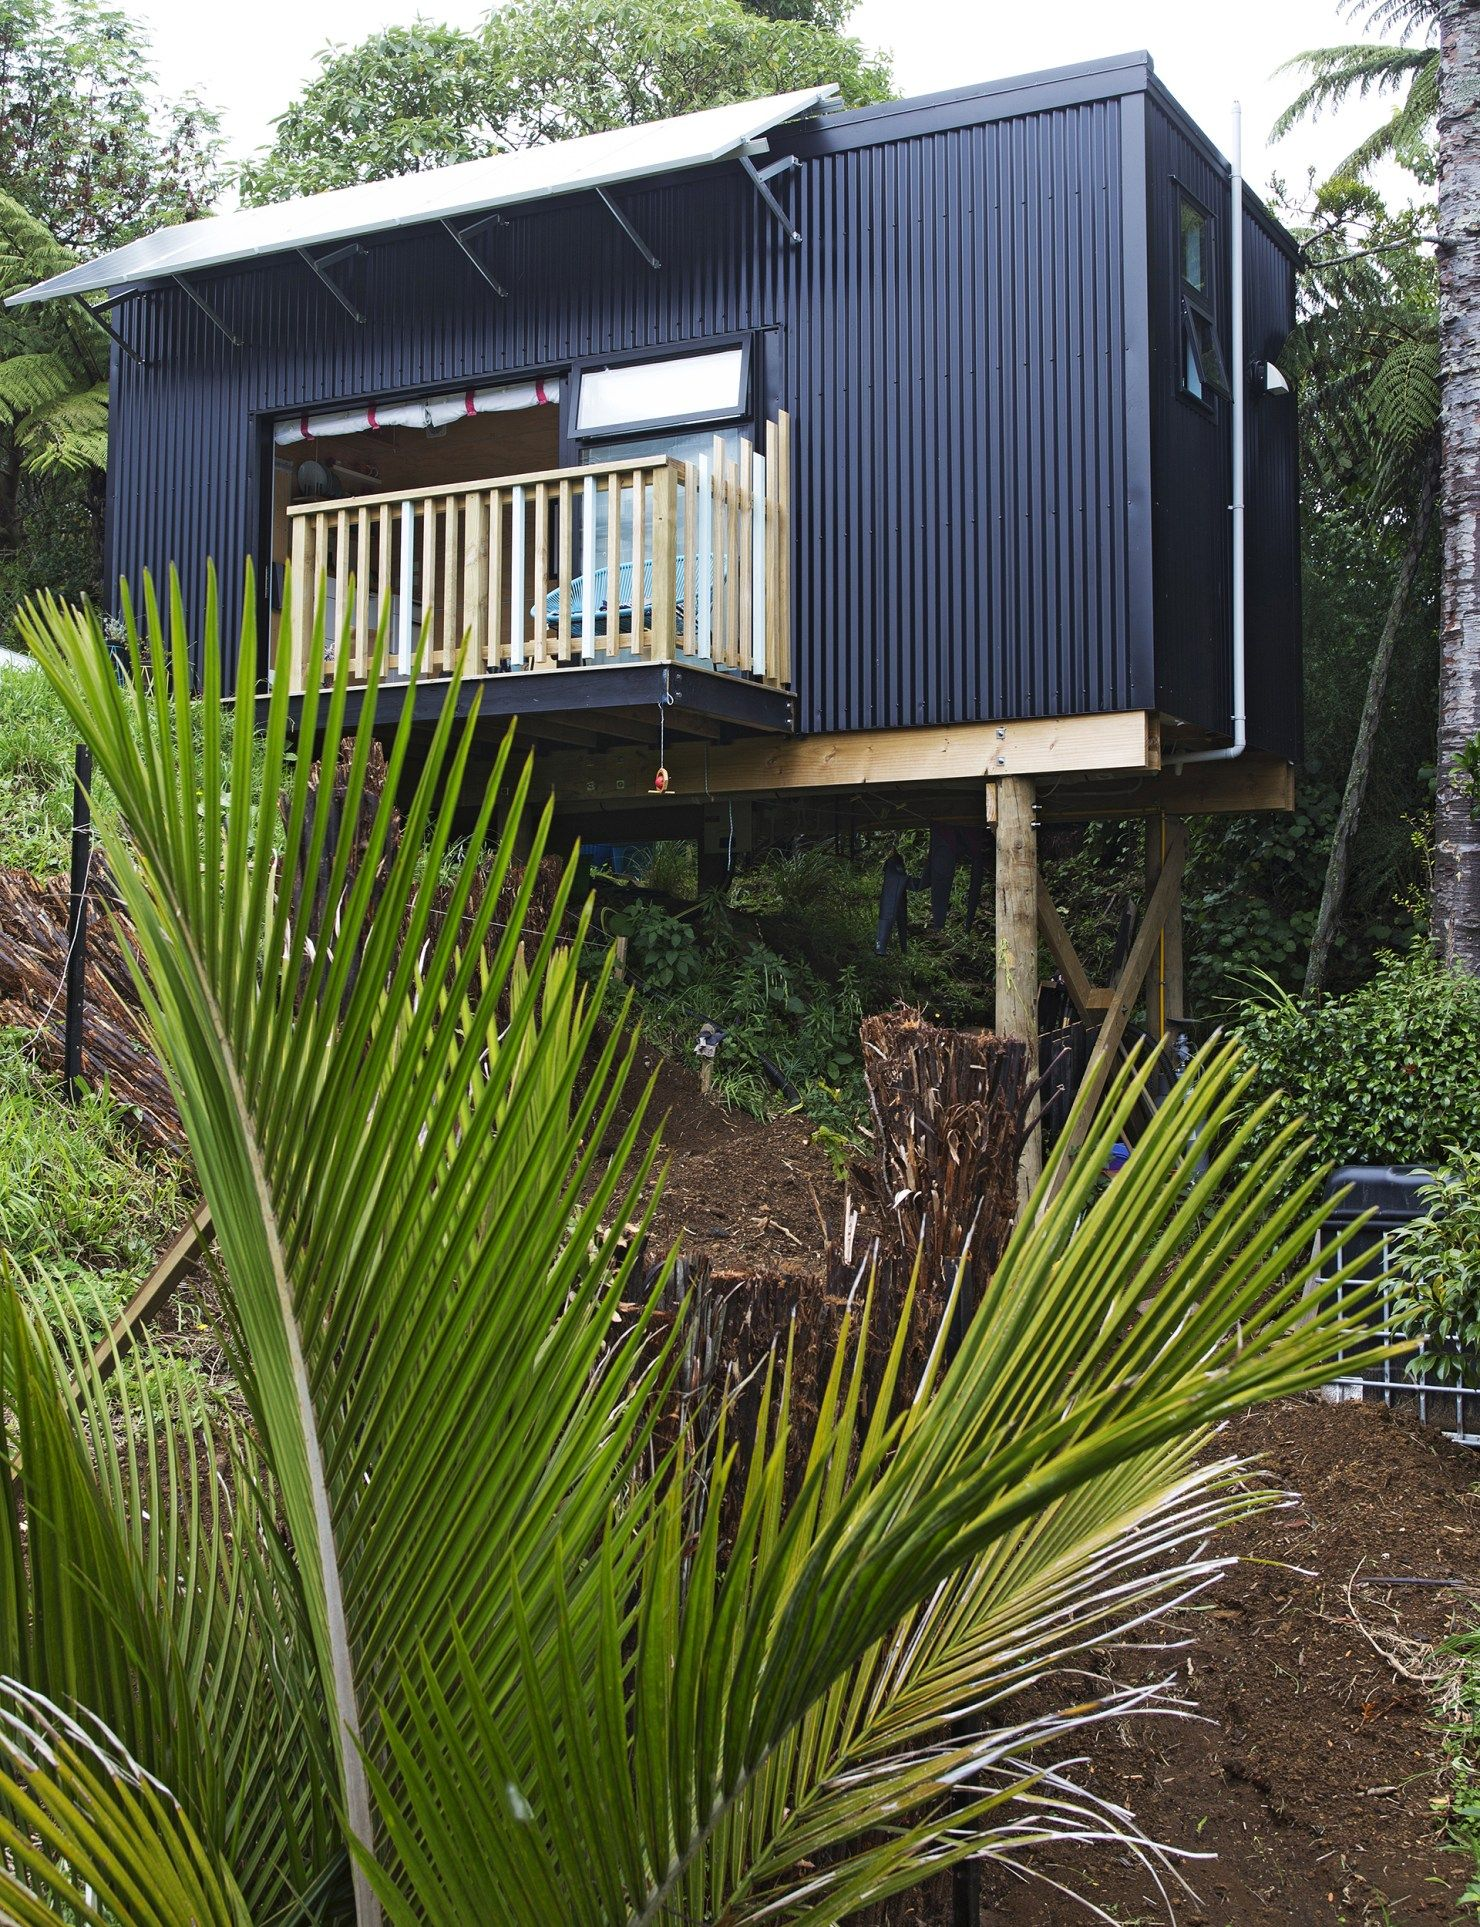 New Plymouth Container Home New Zealand (с изображениями